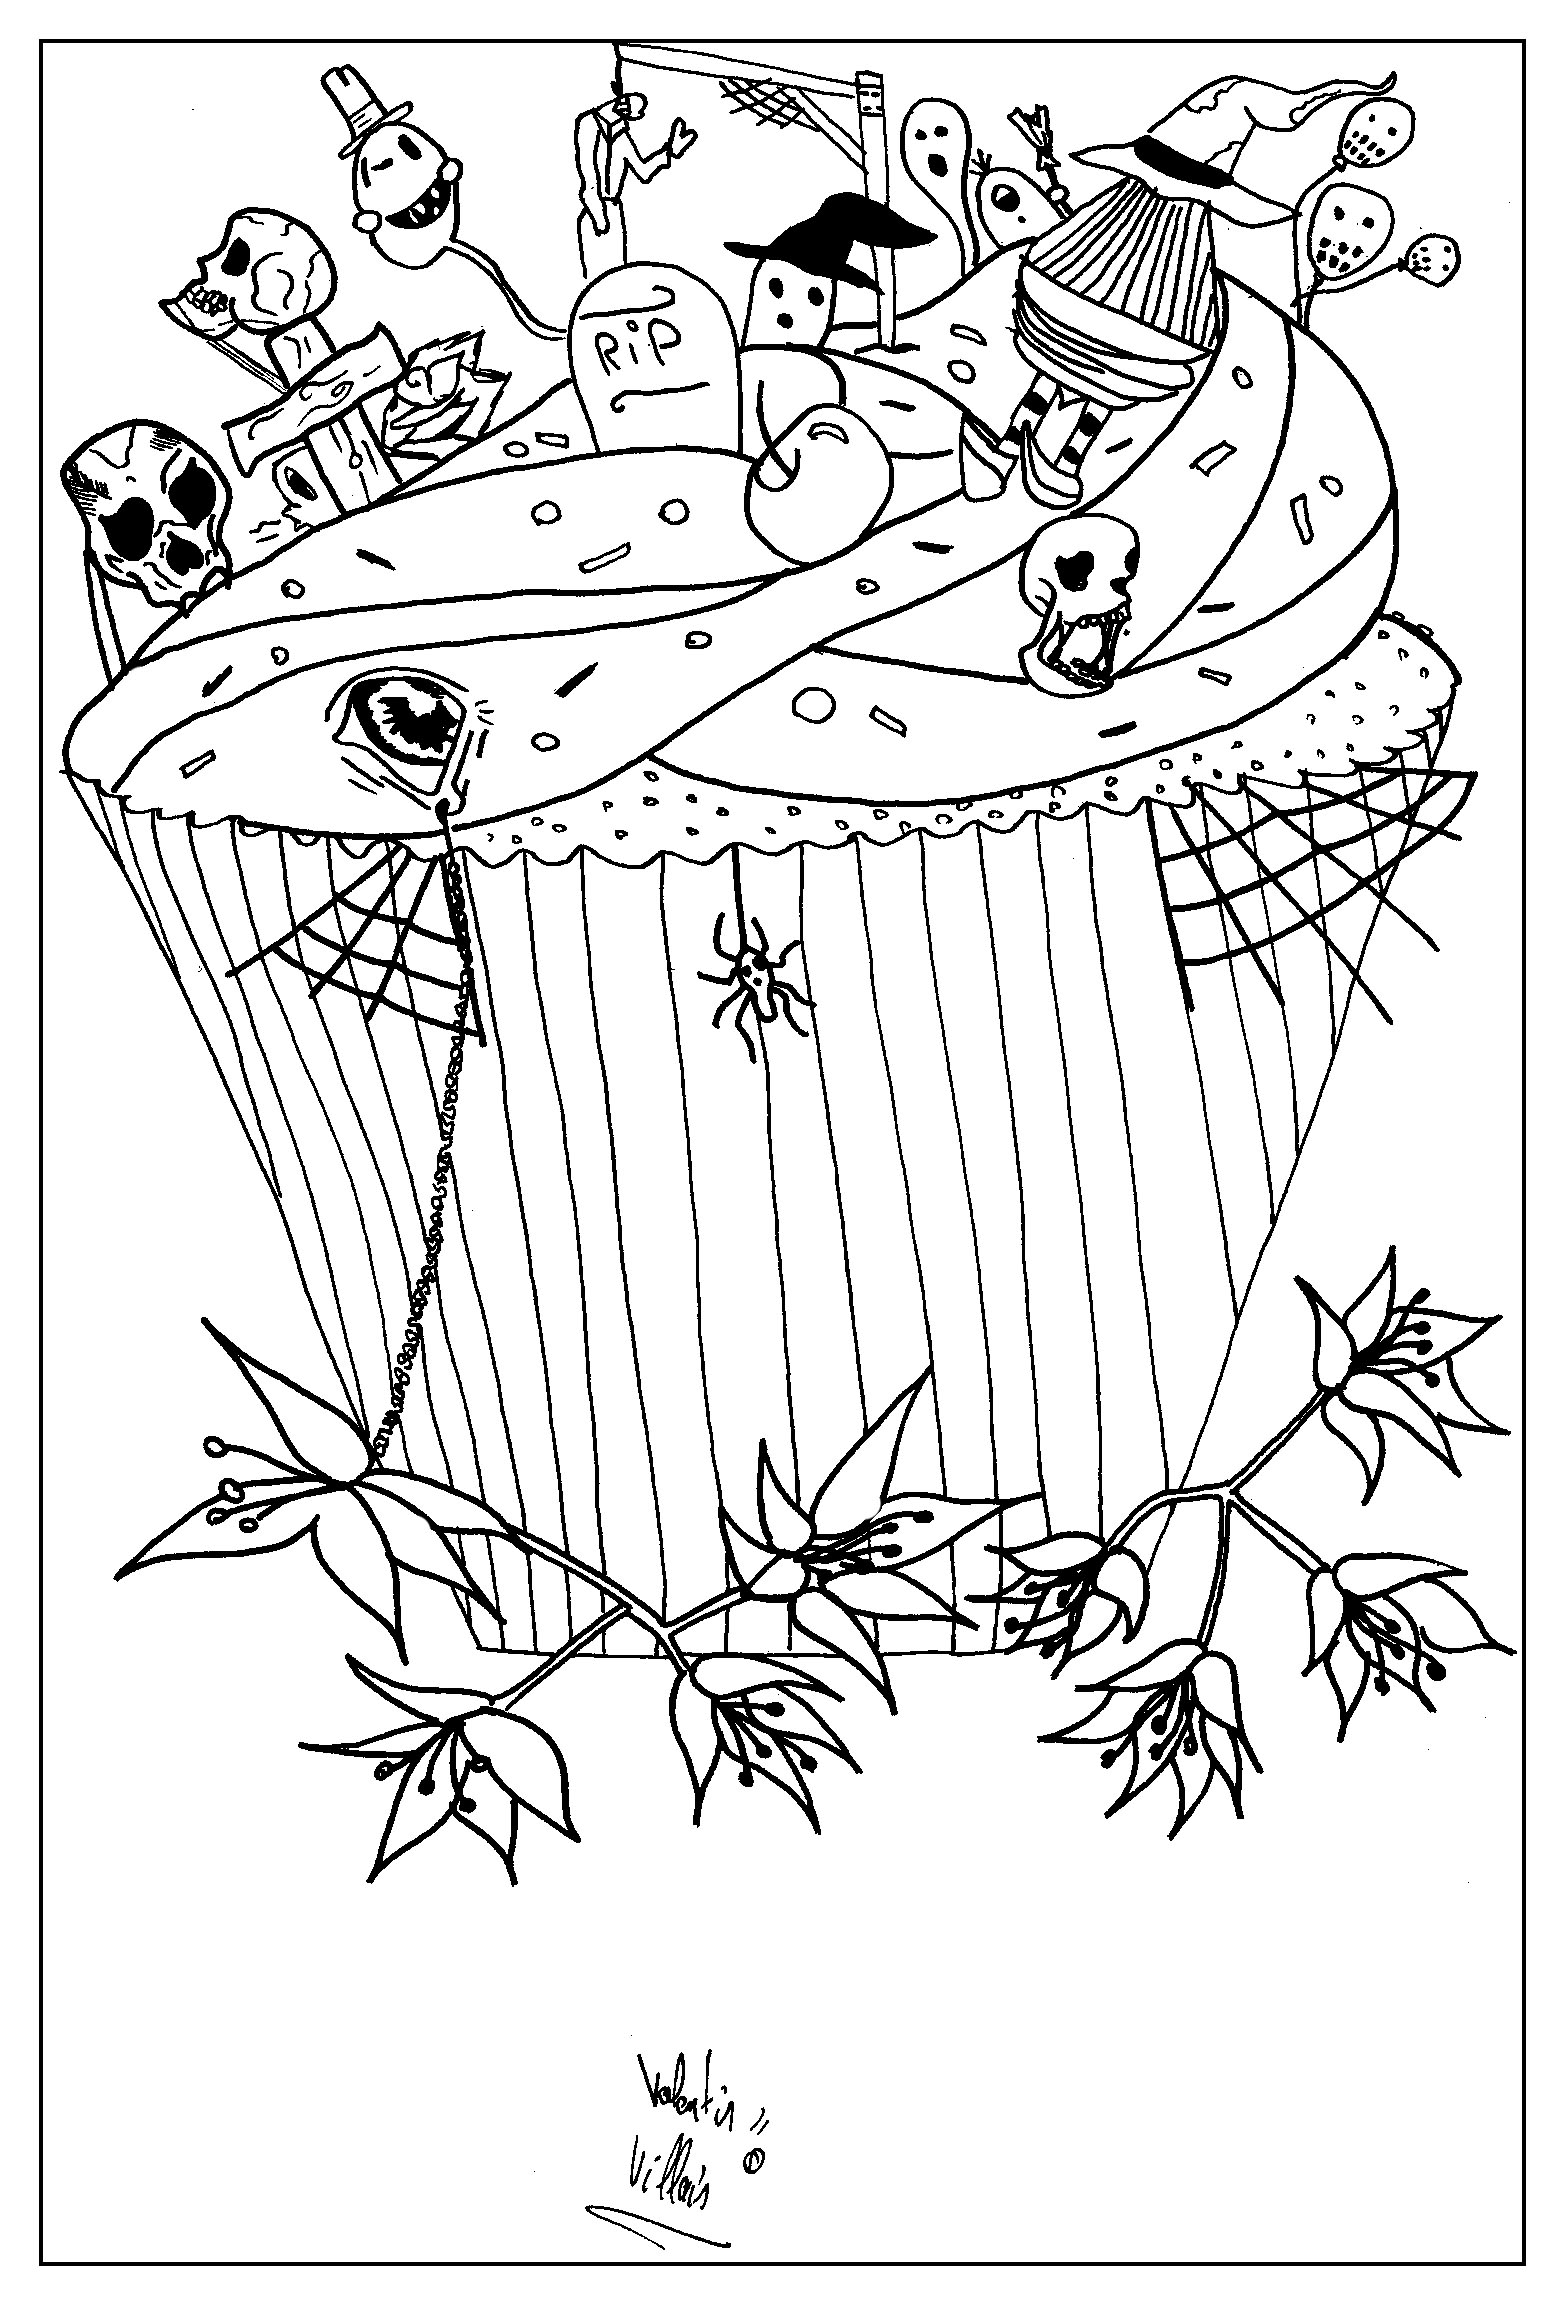 Coloring page of a pretty special cupcake